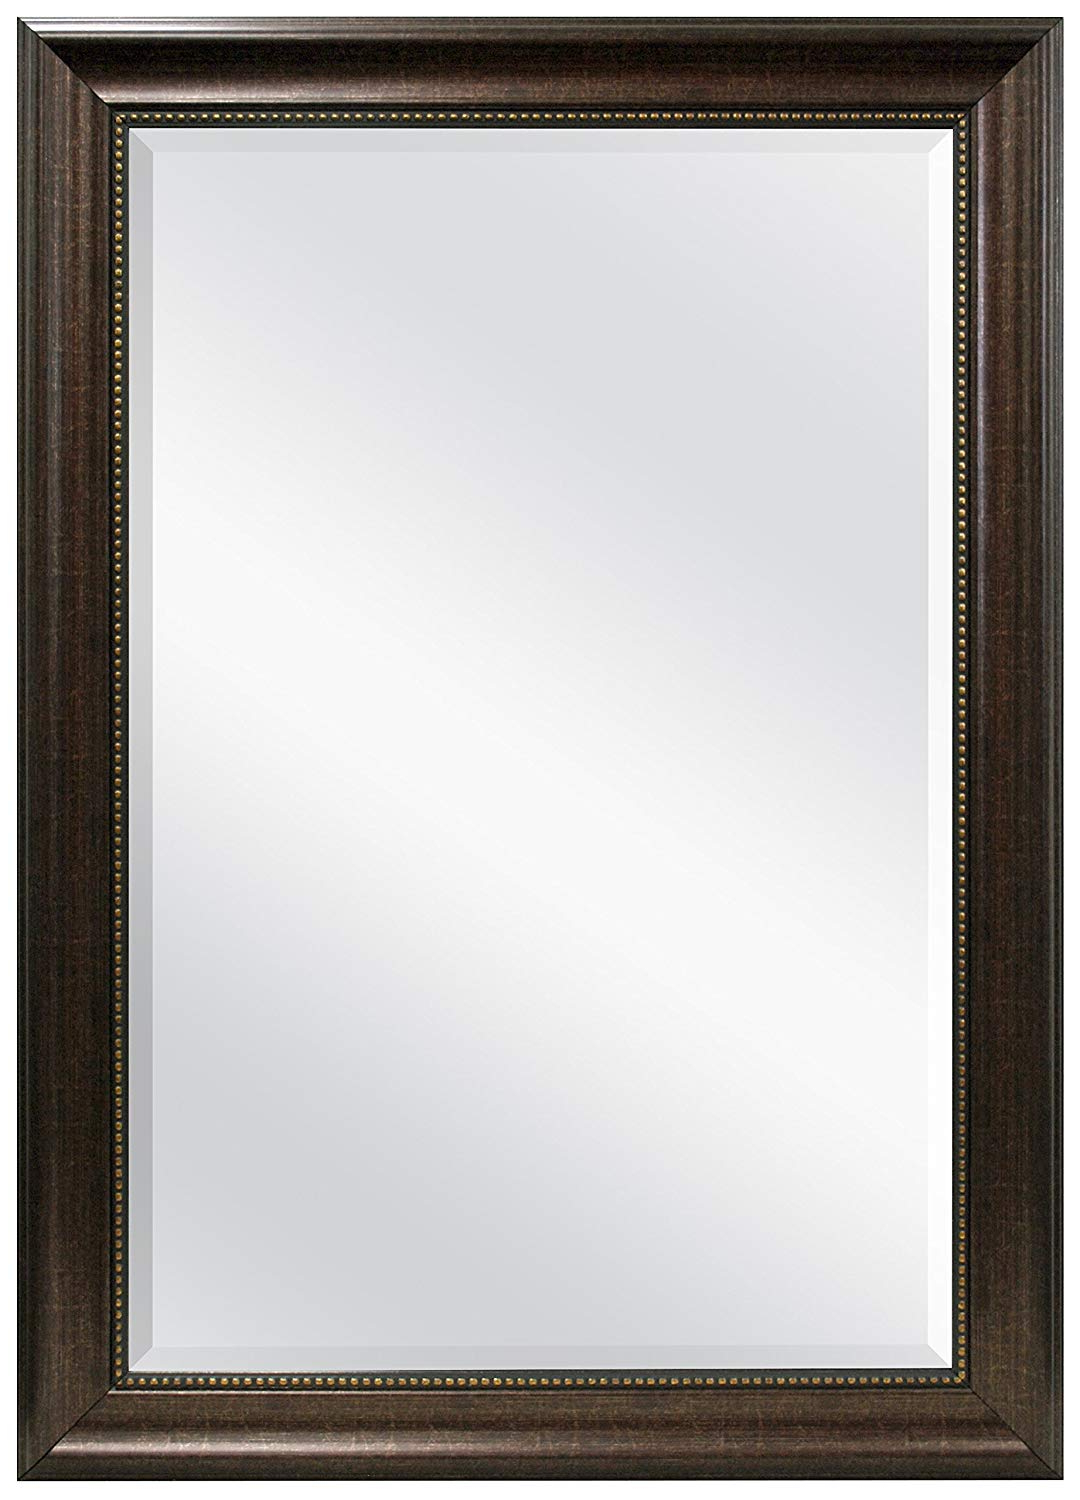 24 X 36 Wall Mirrors For Famous Mcs 24X36 Inch Beaded Rectangular Wall Mirror, 30X42 Inch Overall Size,  Bronze (20677) (View 2 of 20)